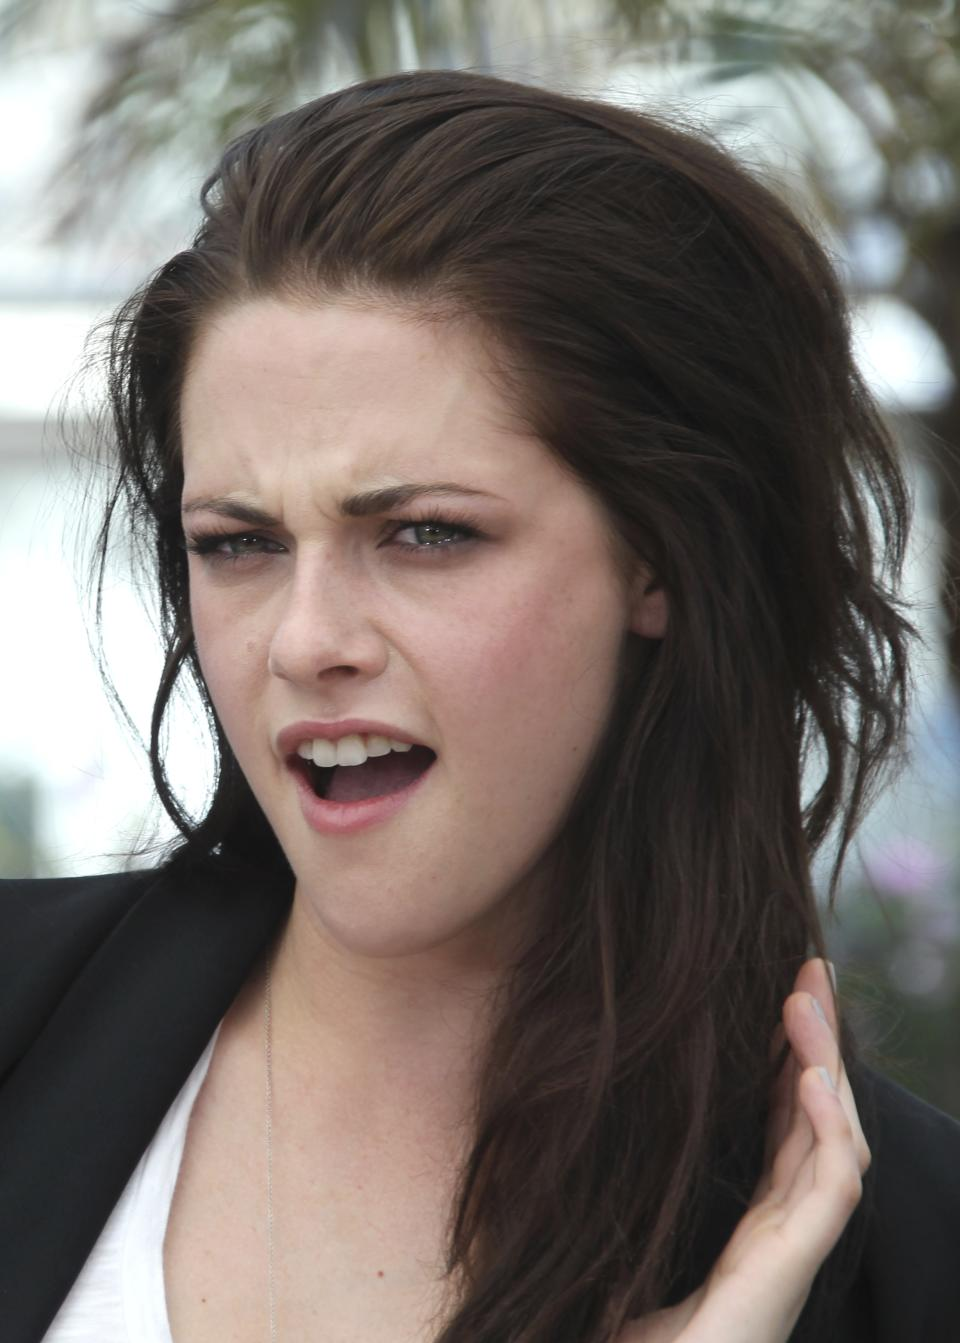 Actress Kristen Stewart poses during a photo call for On the Road at the 65th international film festival, in Cannes, southern France, Wednesday, May 23, 2012. (AP Photo/Joel Ryan)